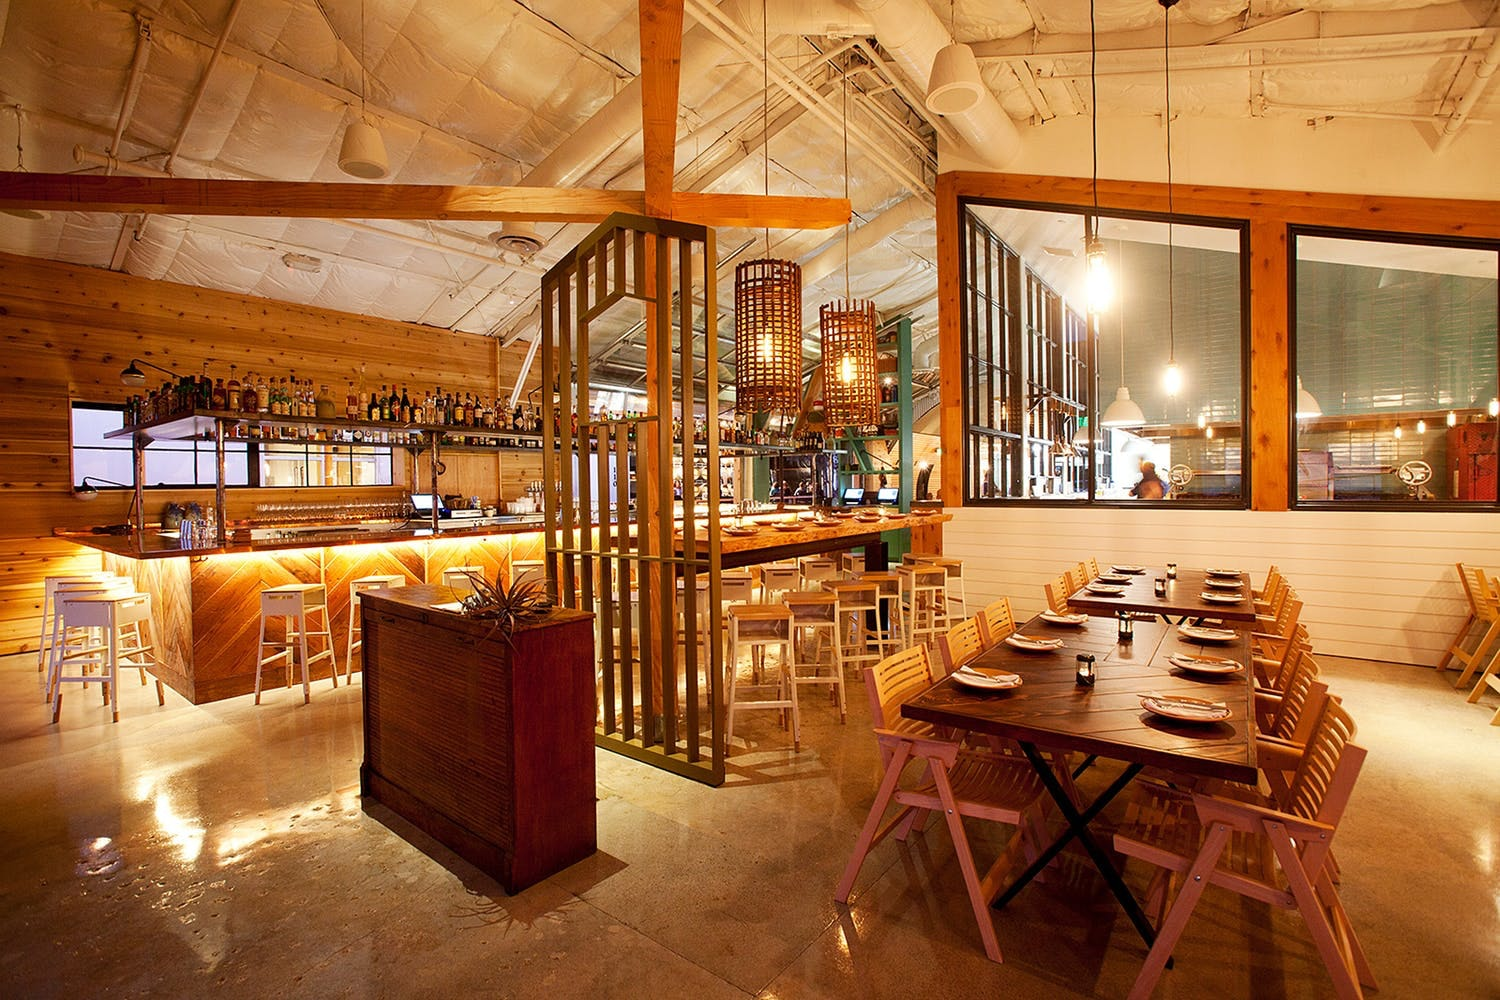 Peoples choice award restaurant category campfire san diego ca designed by aero collective architect bells whistles interior designer